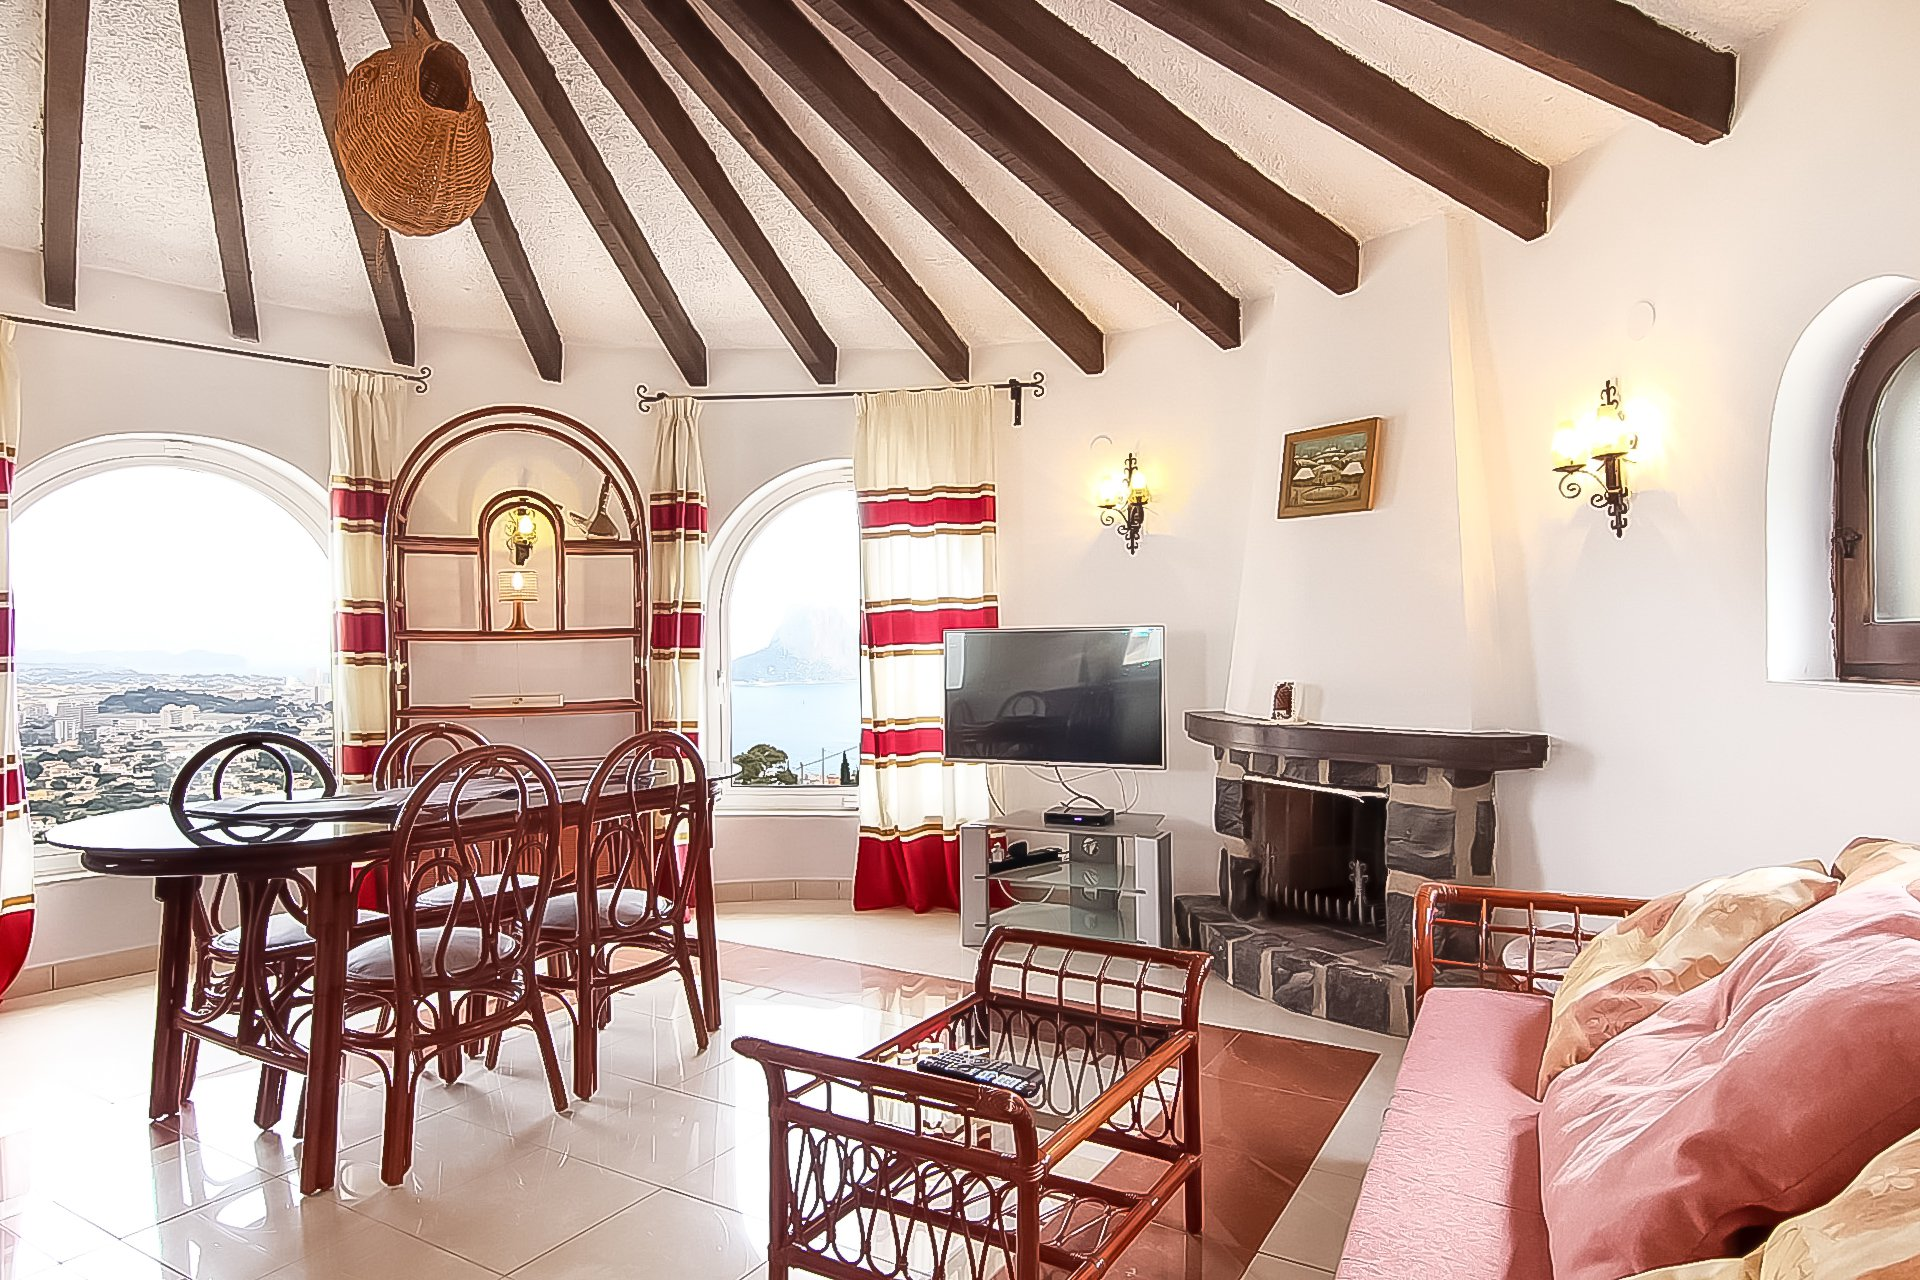 4-bedroom villa in Calpe